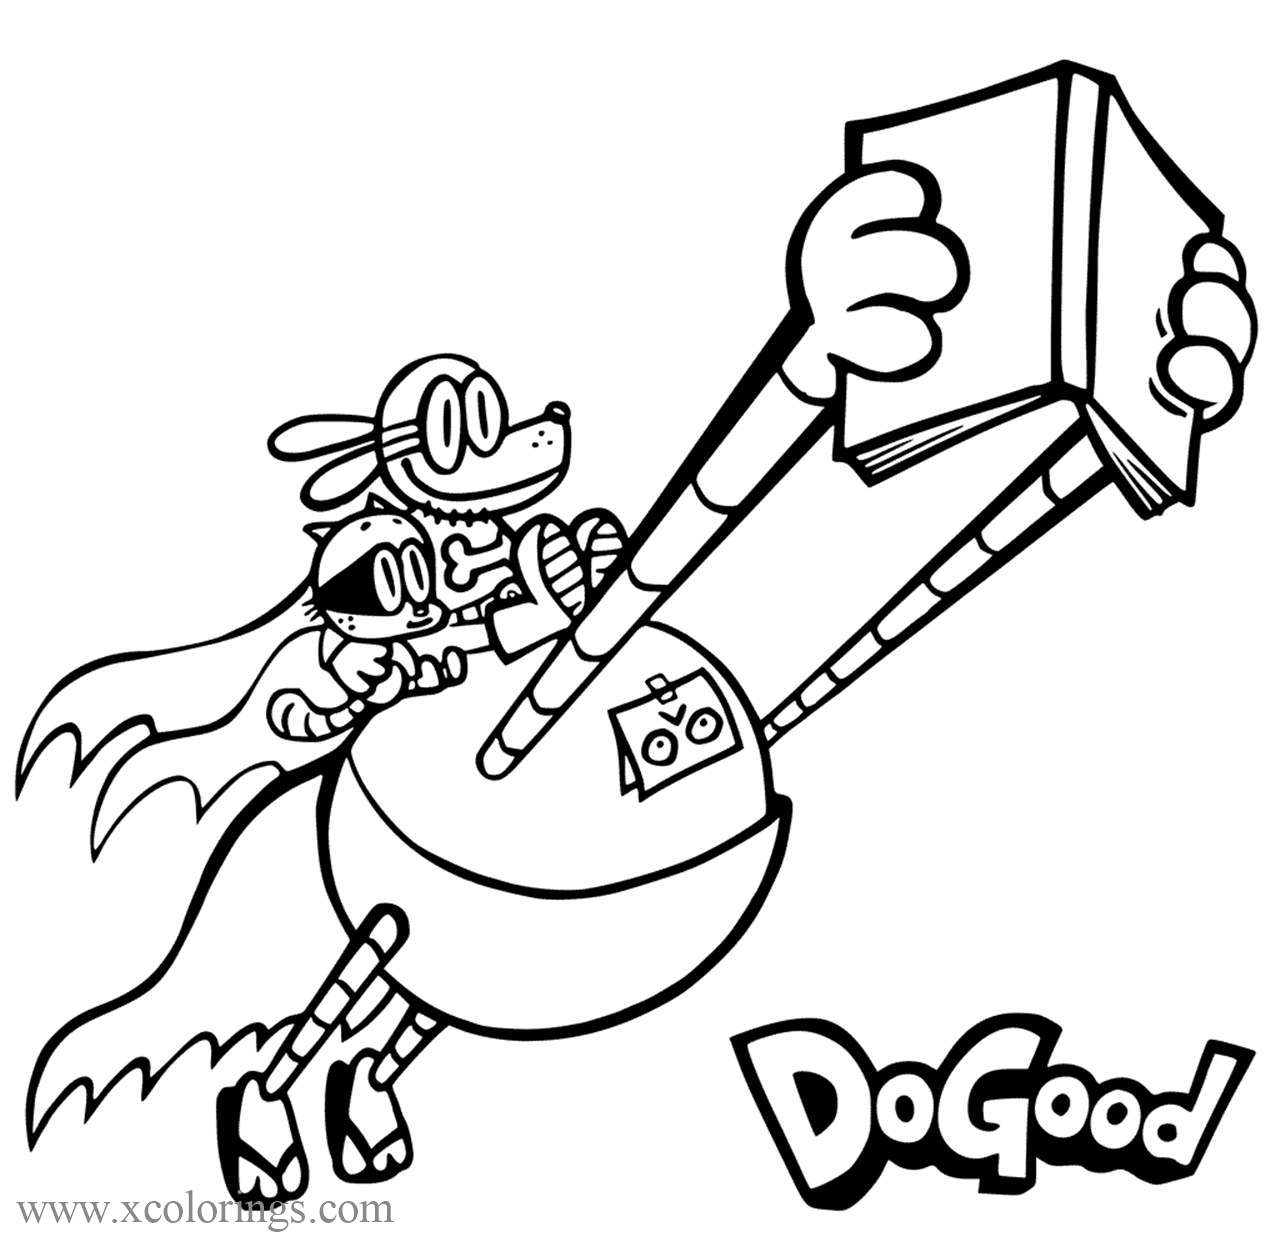 dog man coloring pages dog man coloring pages archives xcolorings man coloring pages dog